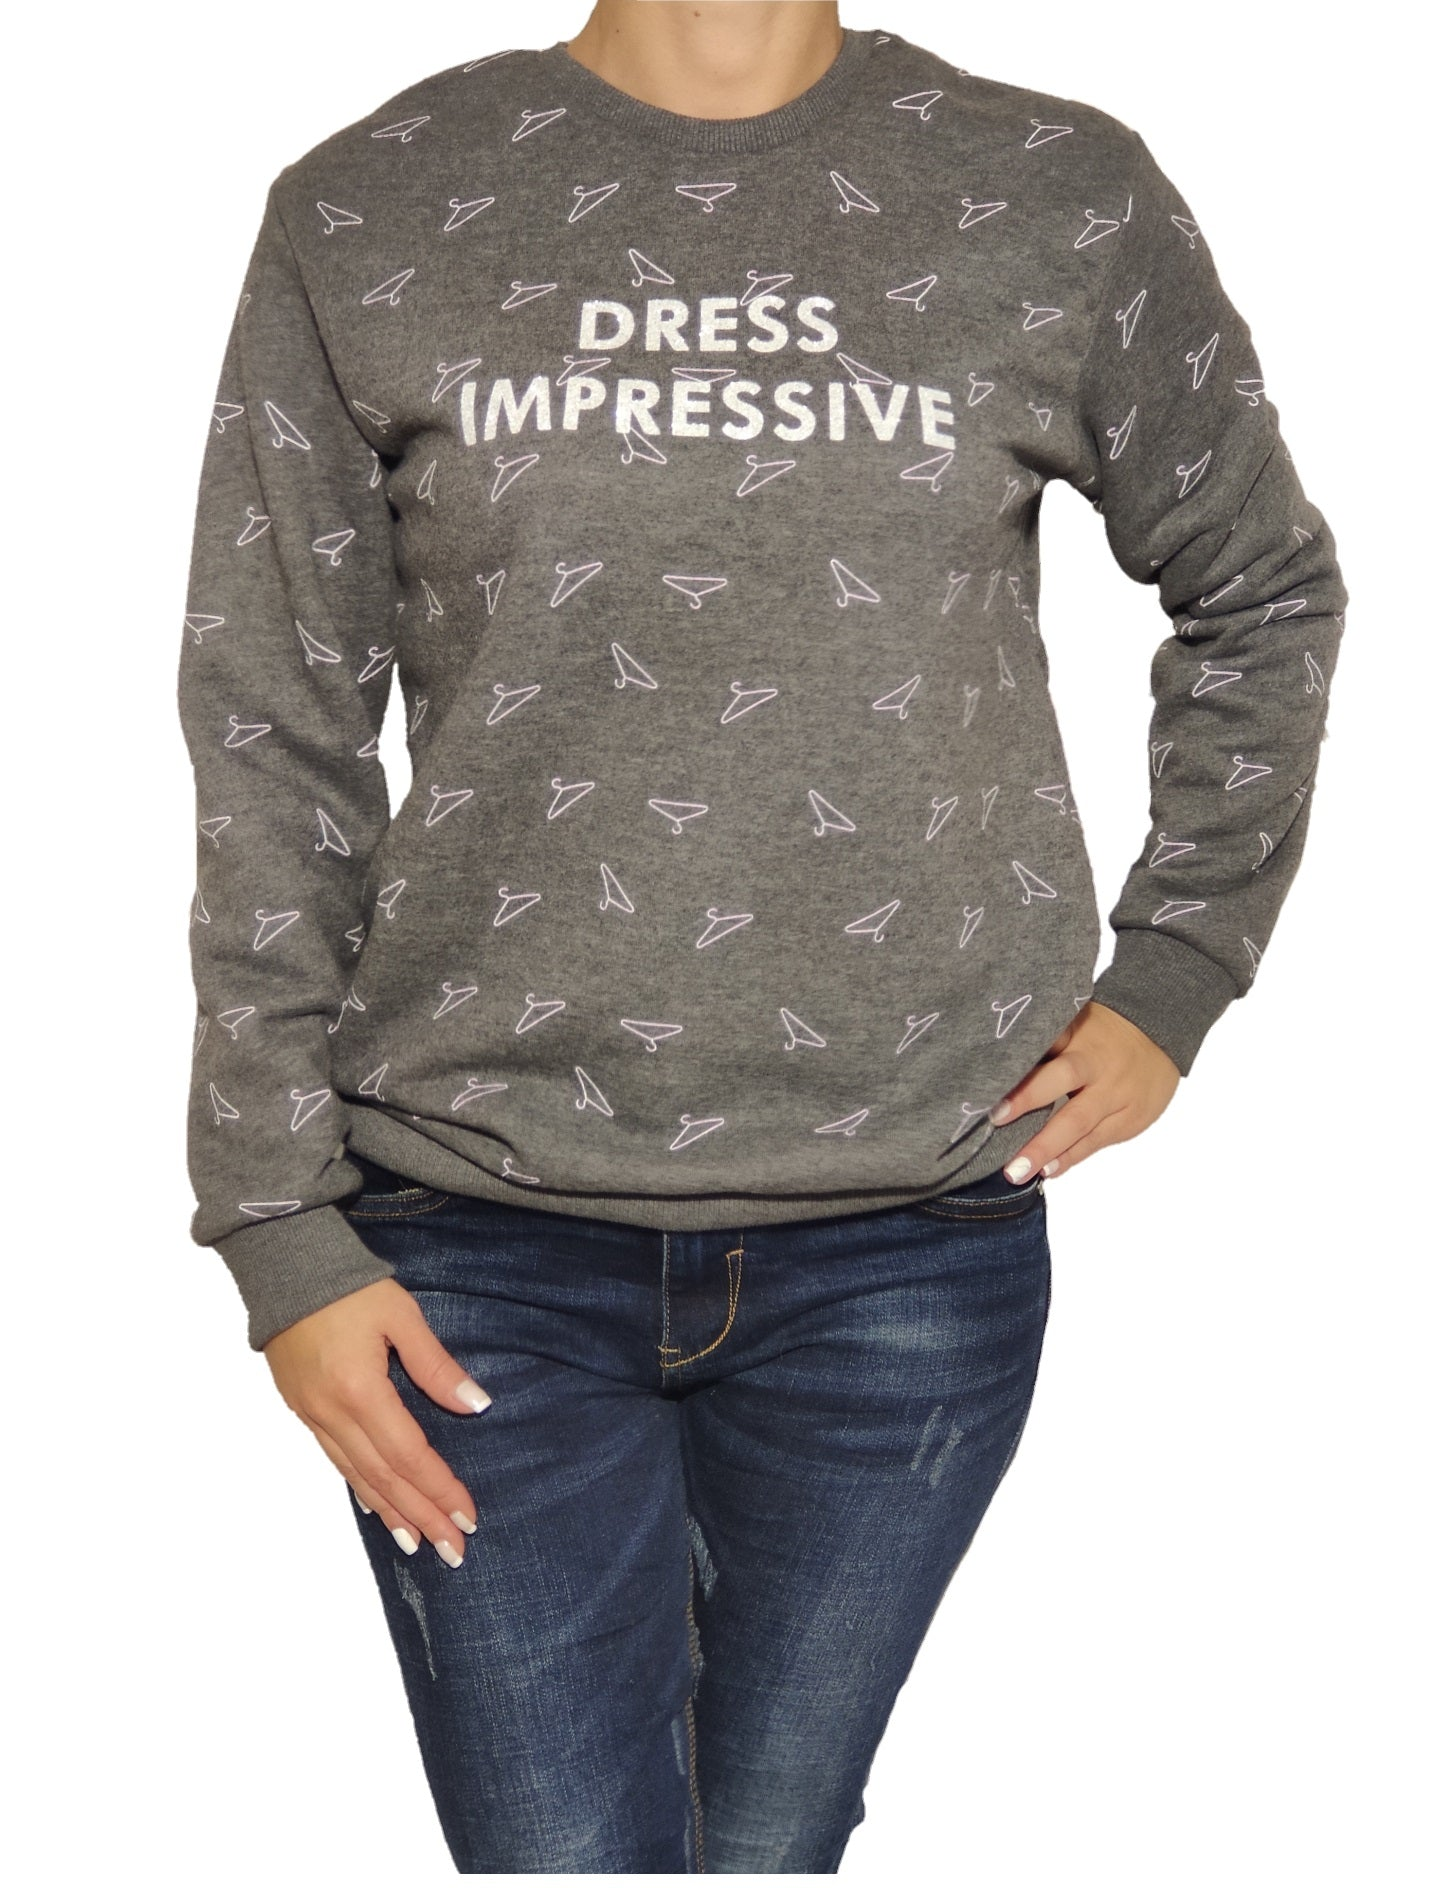 a-girl-wears-a-grey-blouse-front-side